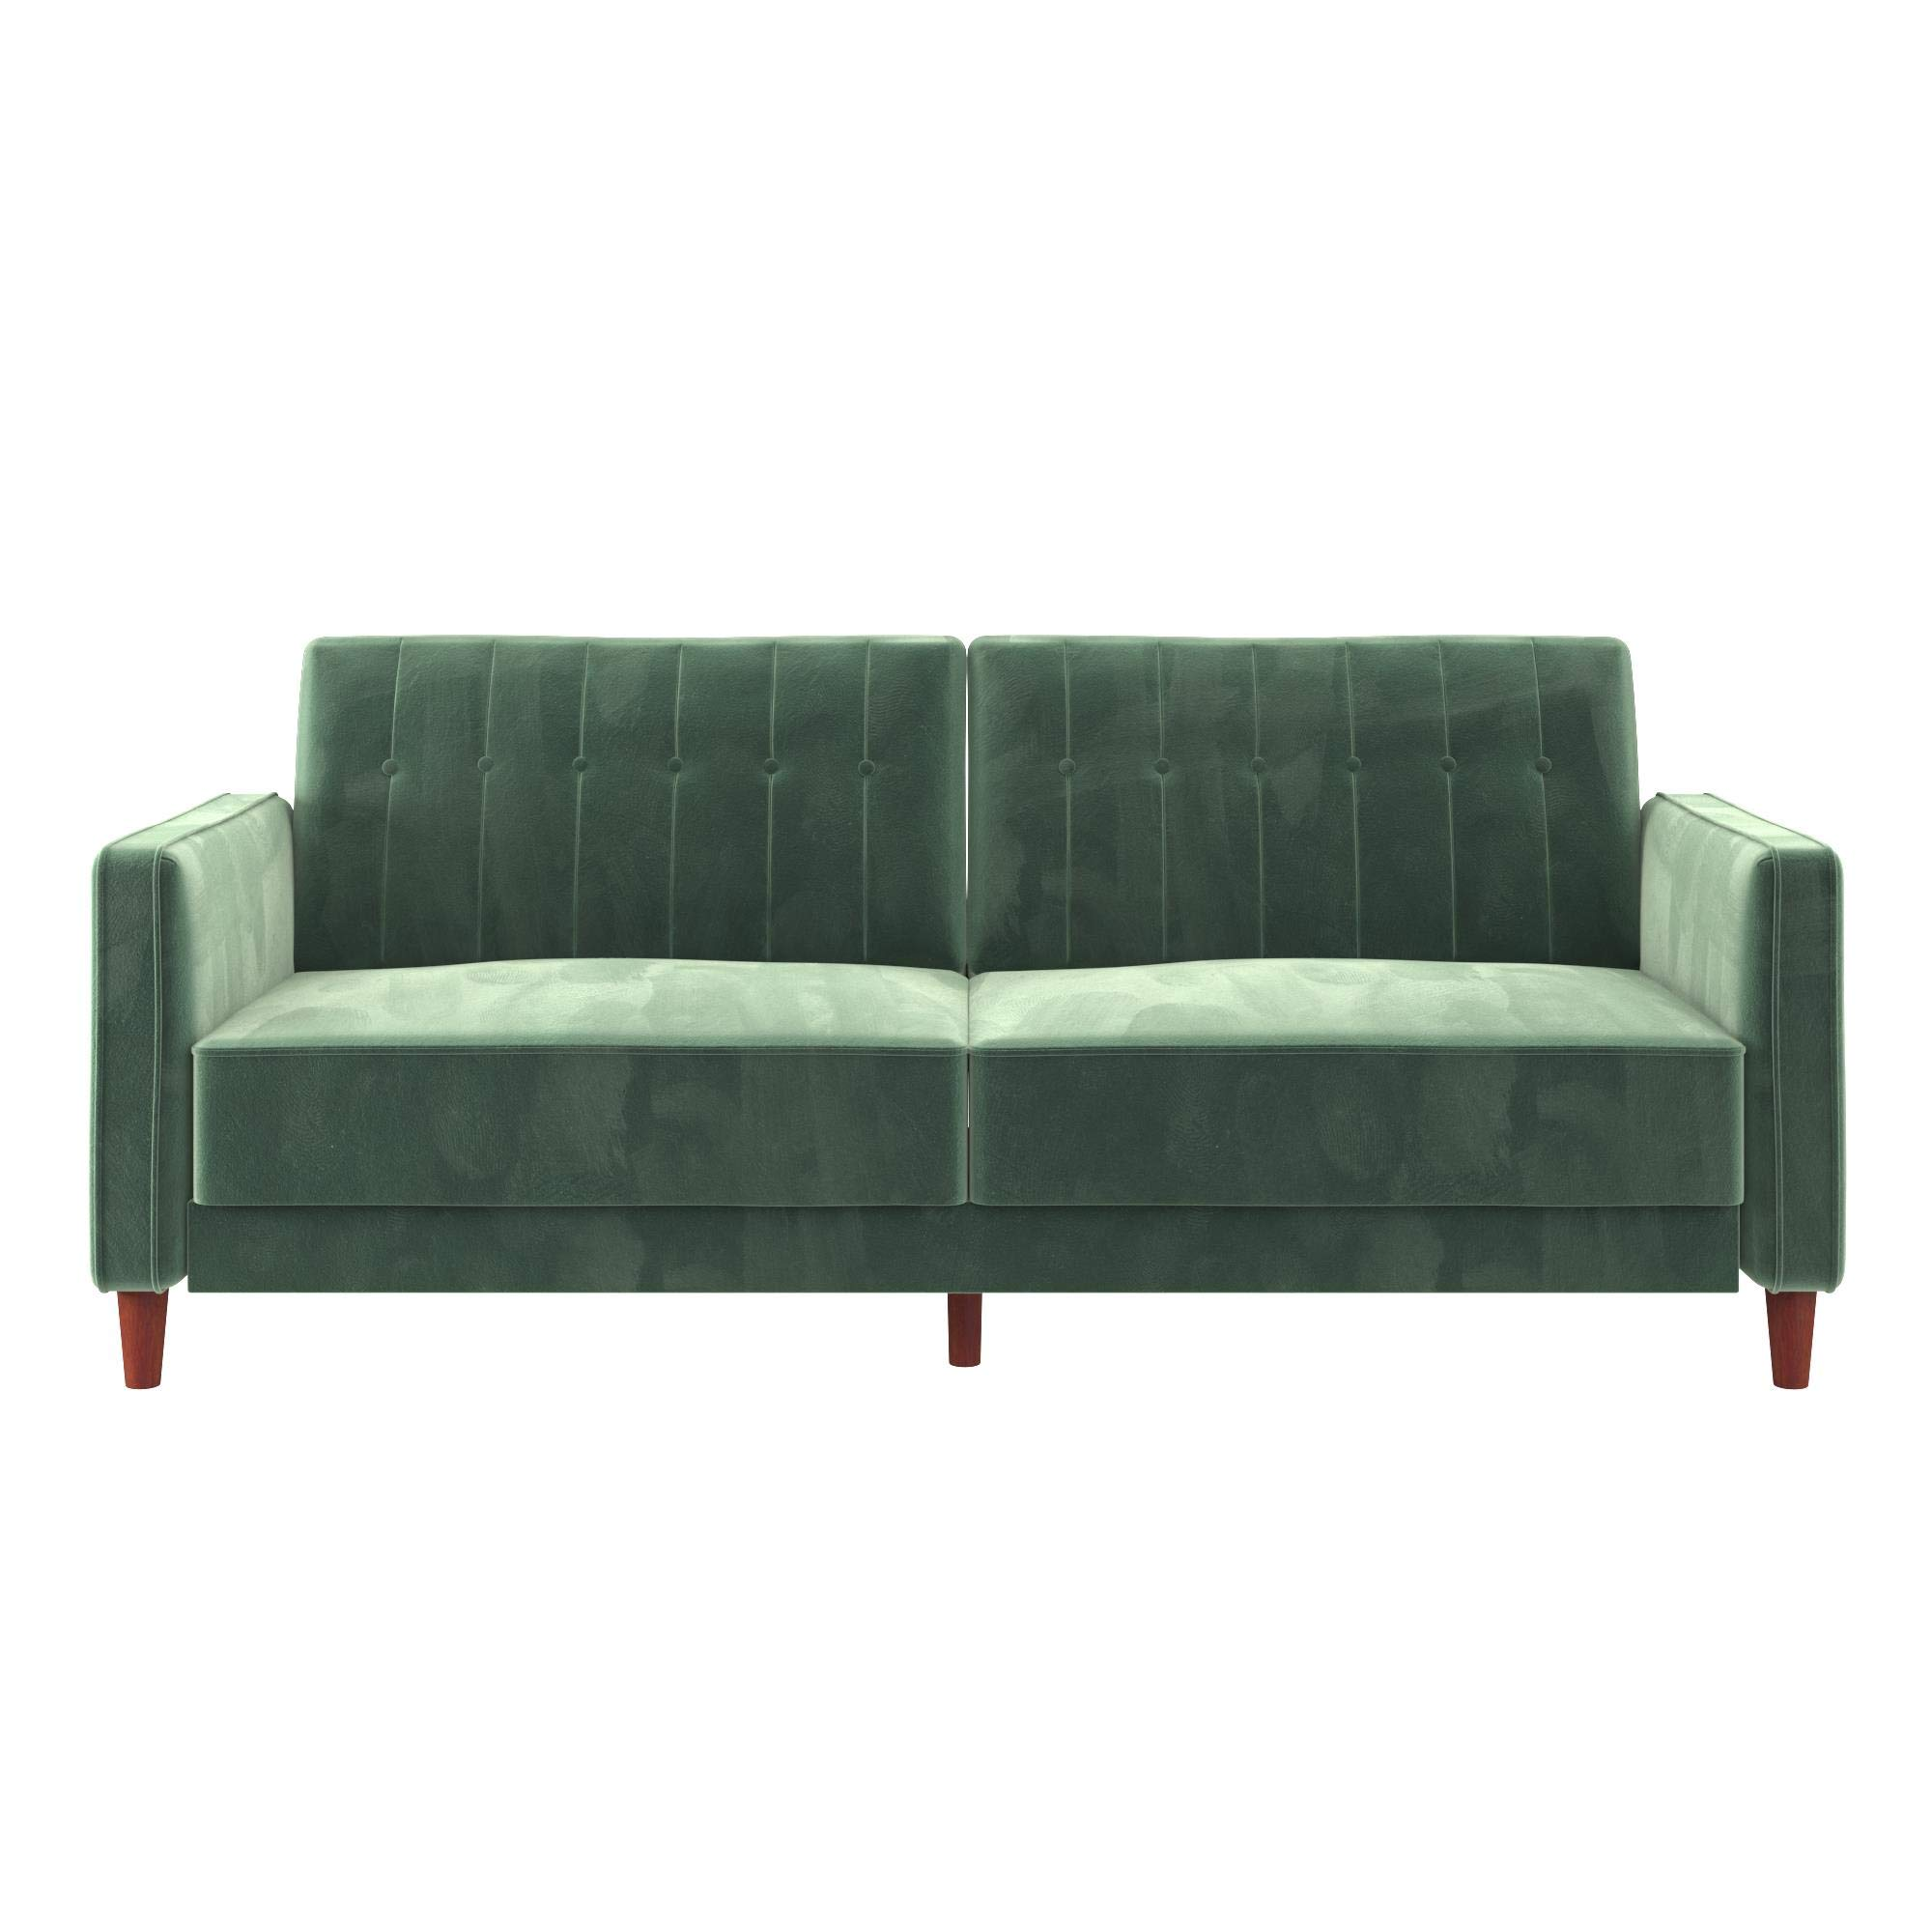 DHP Ivana Futon, Light Green by DHP